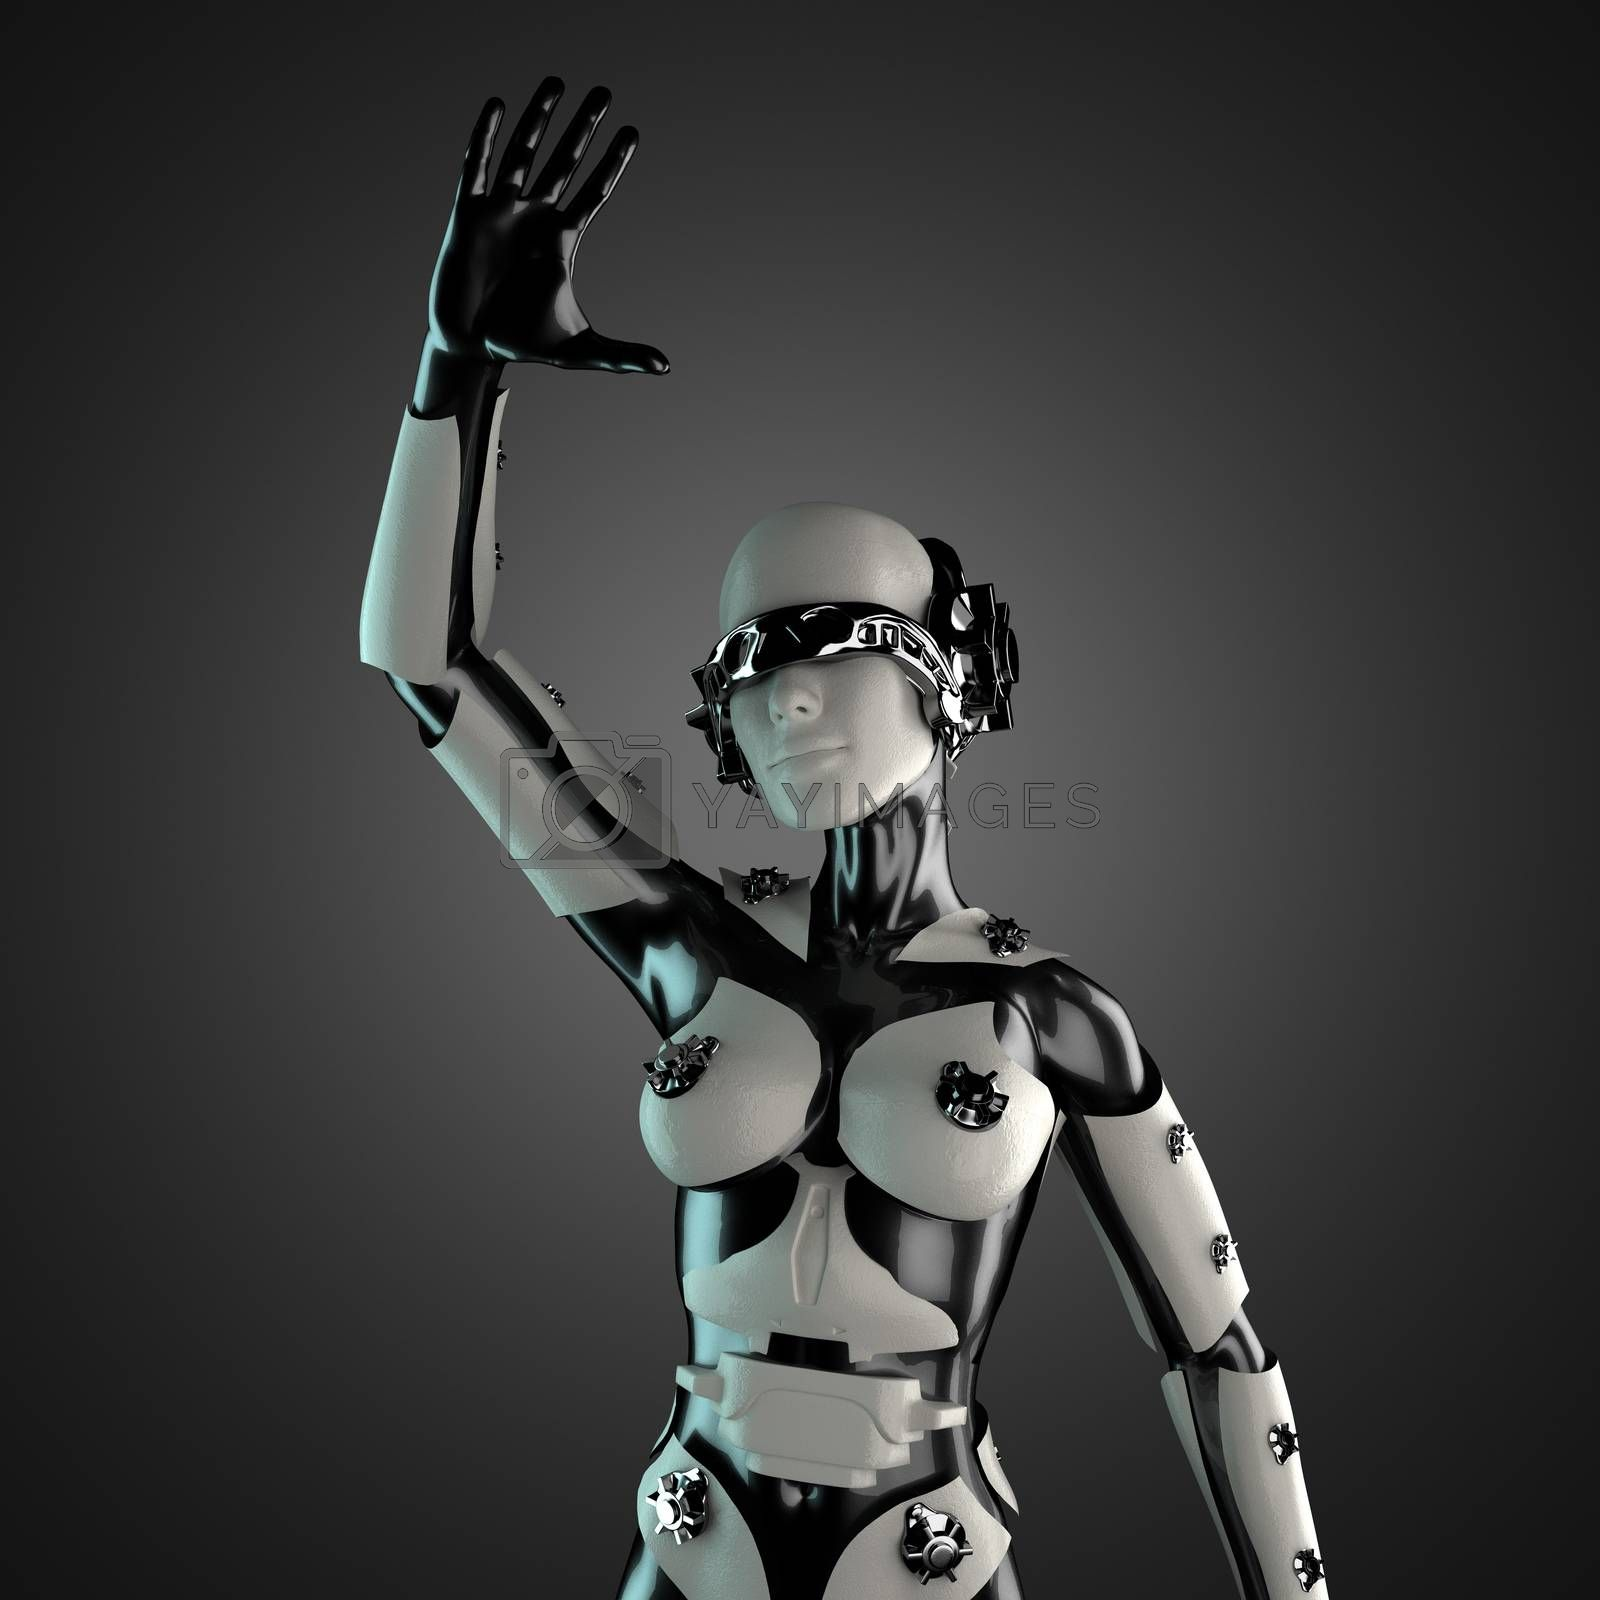 Royalty free image of woman robot of steel and white plastic by videodoctor